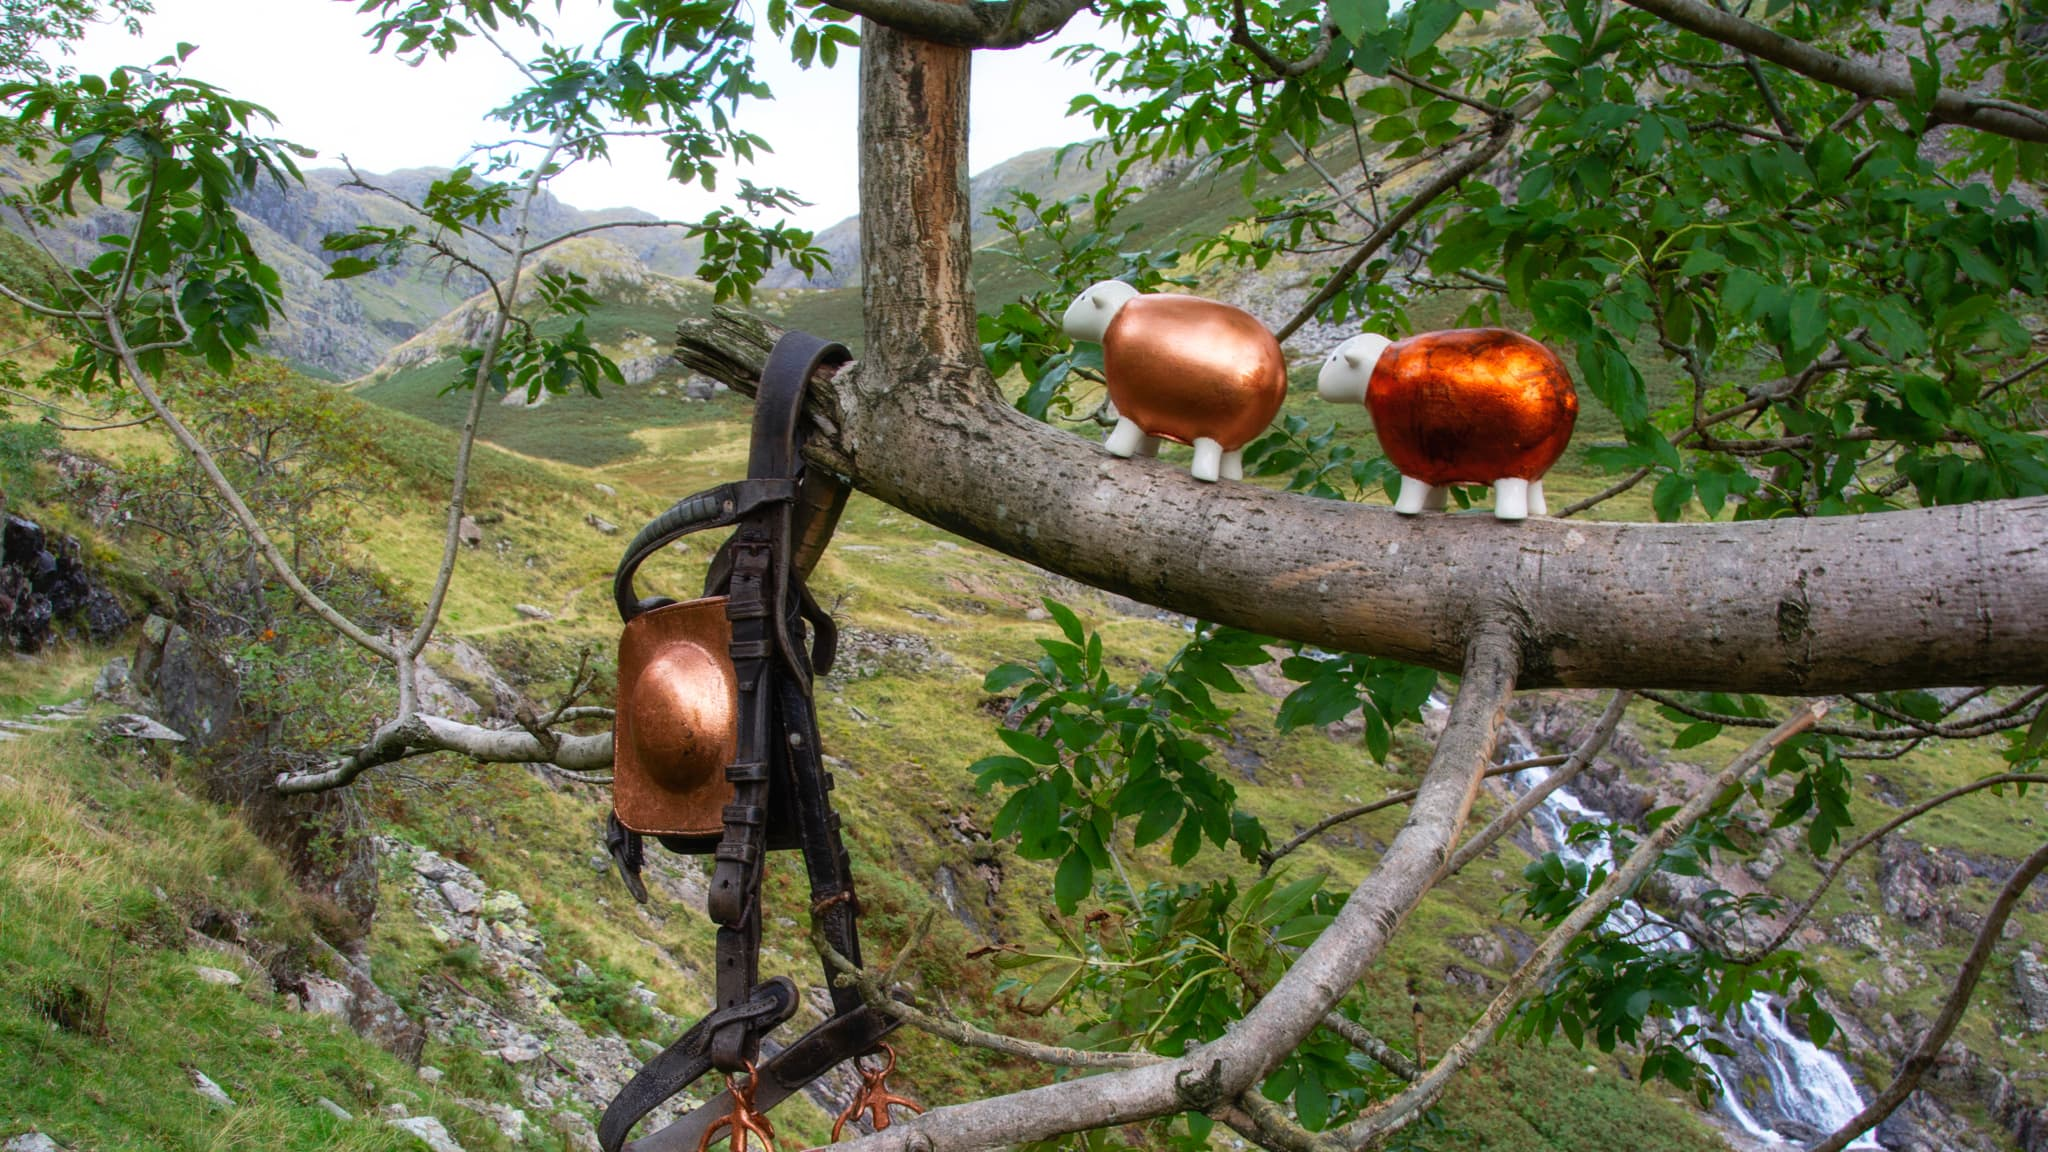 Two copper-gilded Herdy explore the Coppermines trail and landscape above Coniston